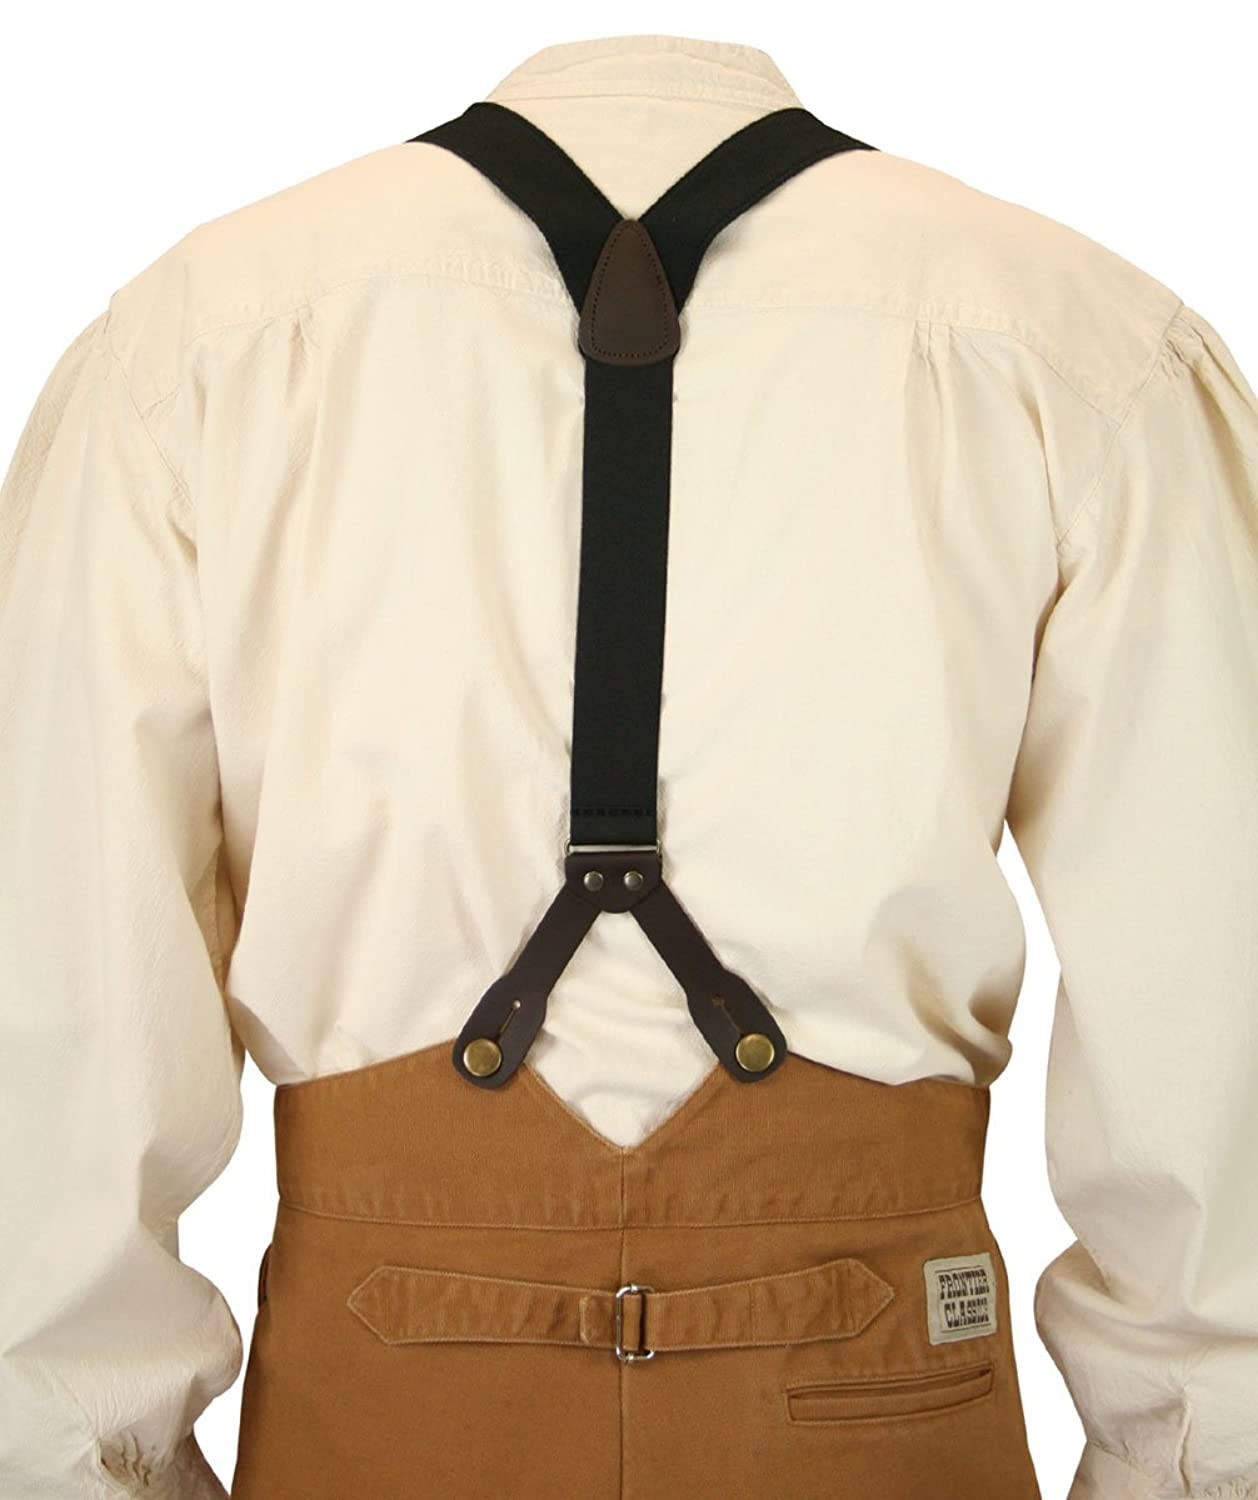 Men's Steampunk Goggles, Guns, Gadgets & Watches Historical Emporium Mens Canvas Stagecoach Y-Back Suspenders $27.95 AT vintagedancer.com